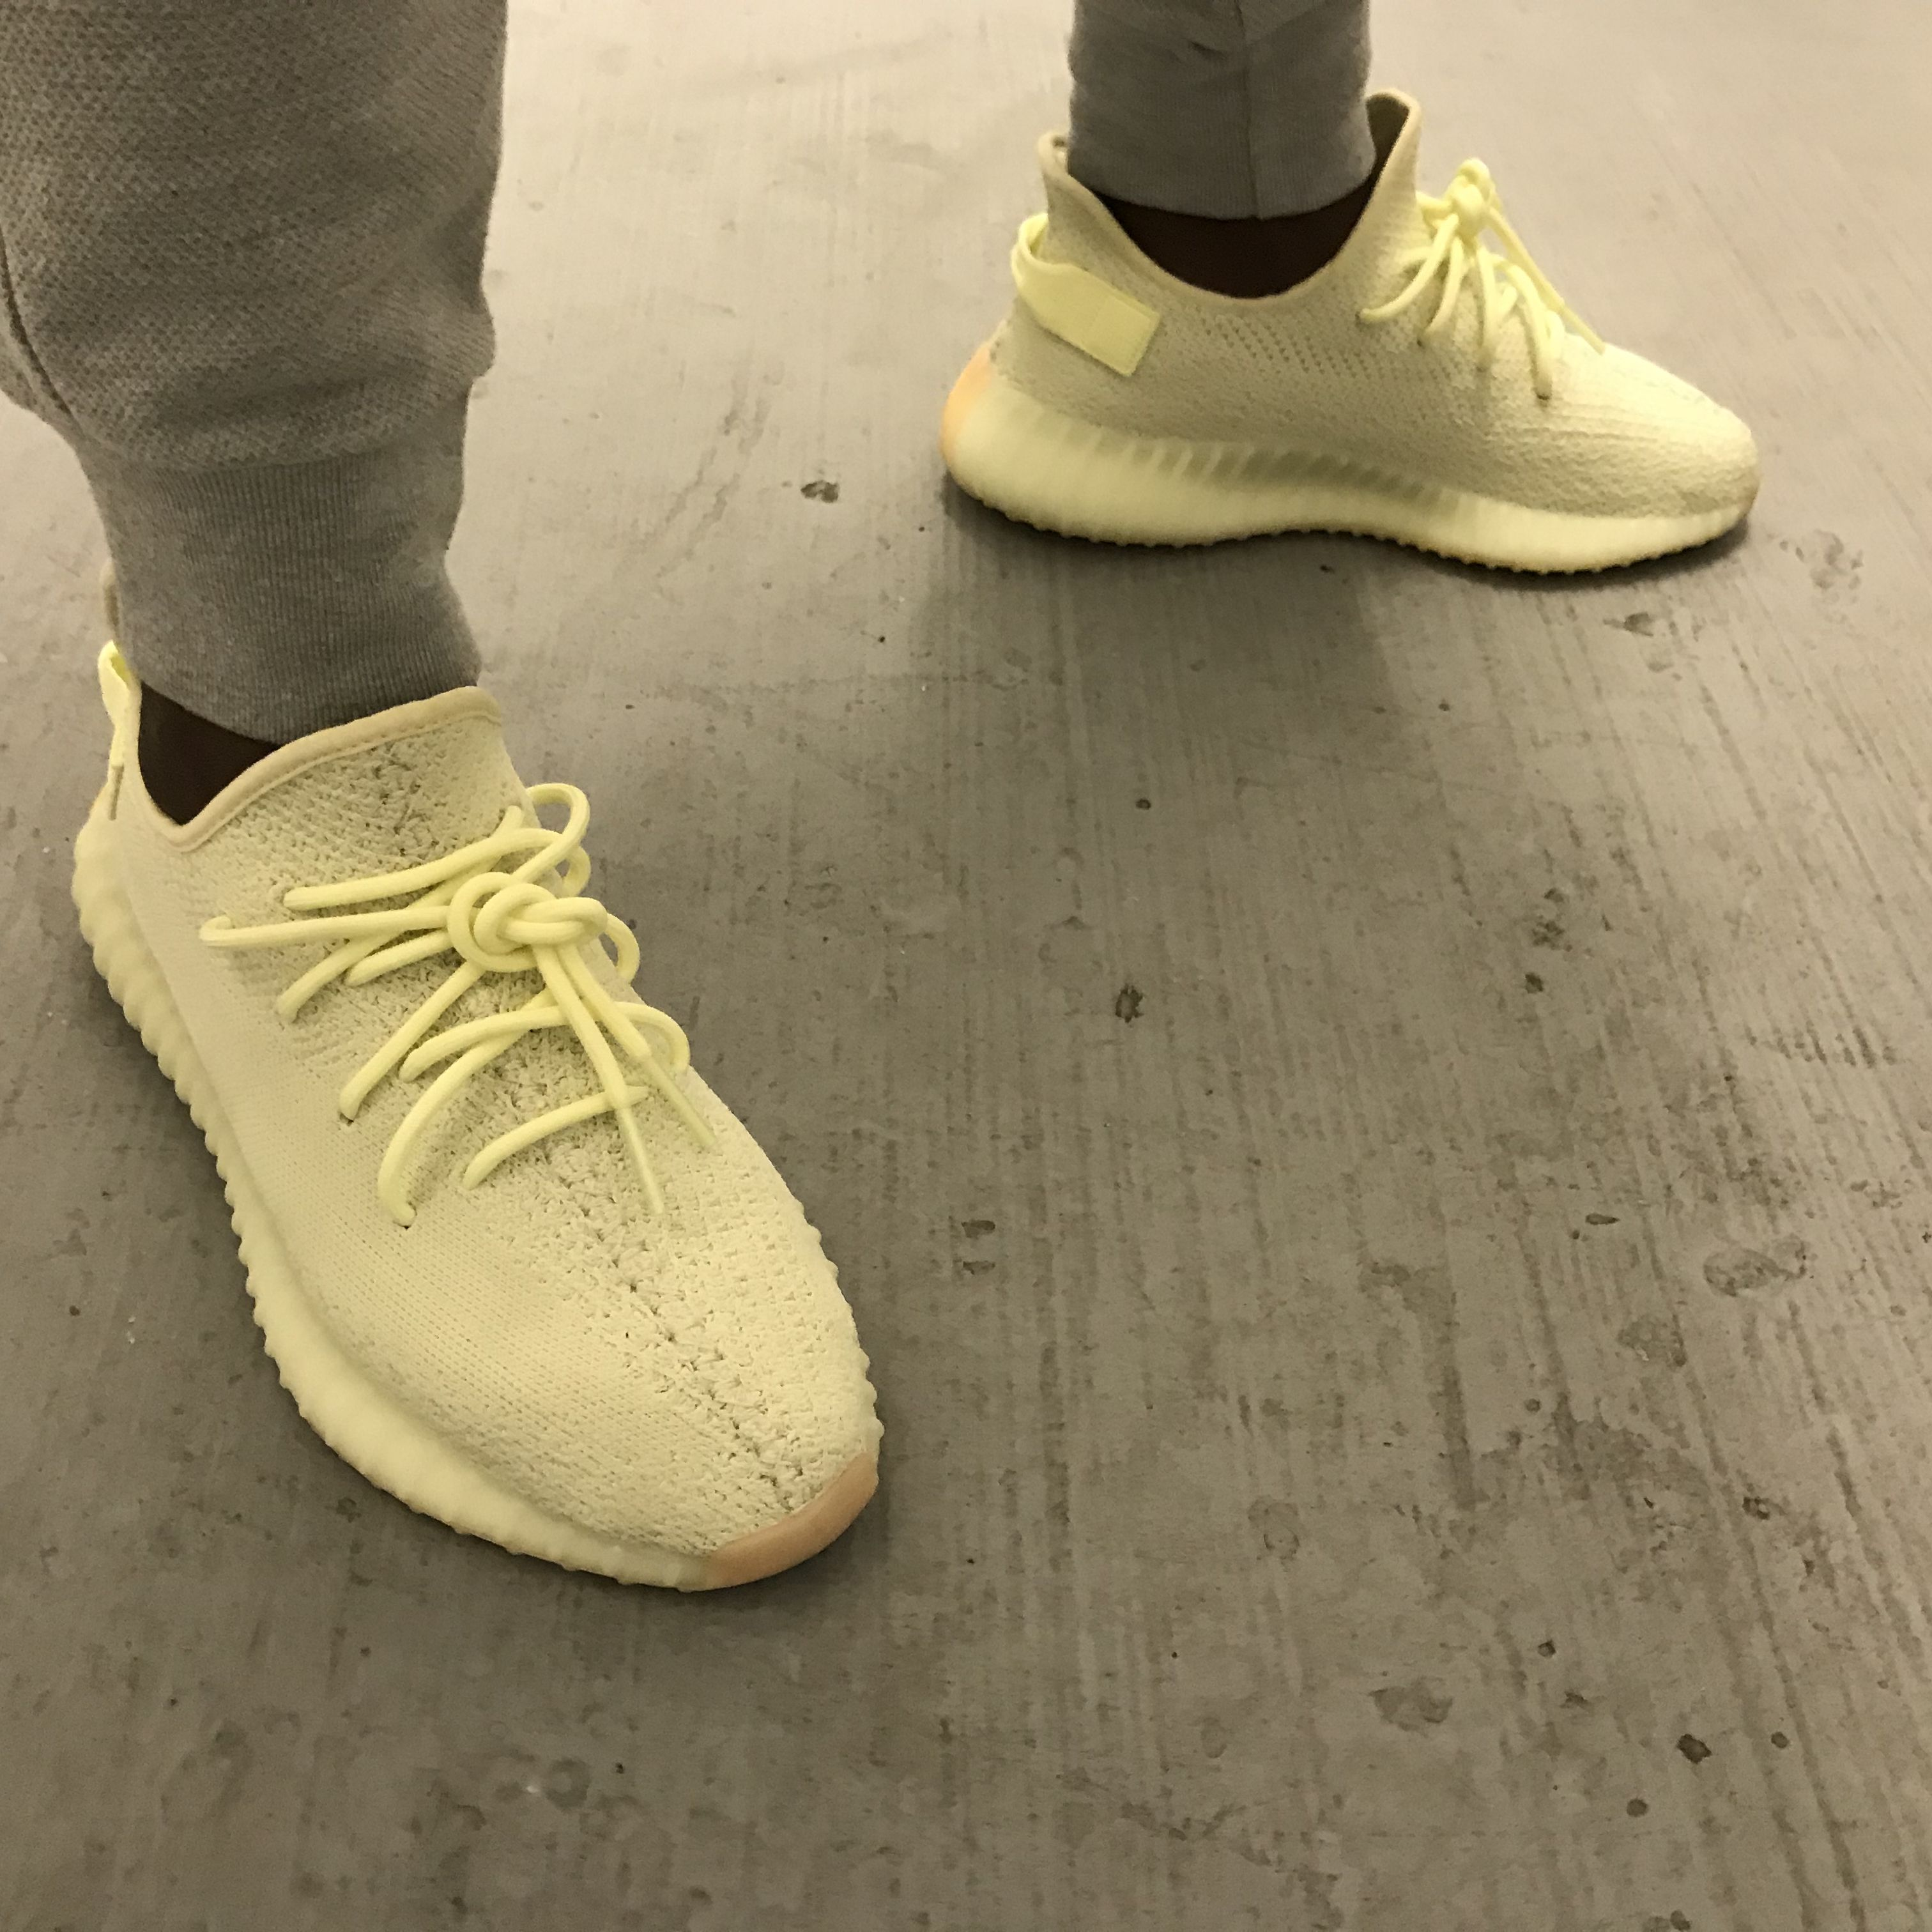 uk availability baf34 50049 Yeezy 350 butter | Outfit in 2019 | Adidas sneakers, Yeezy ...